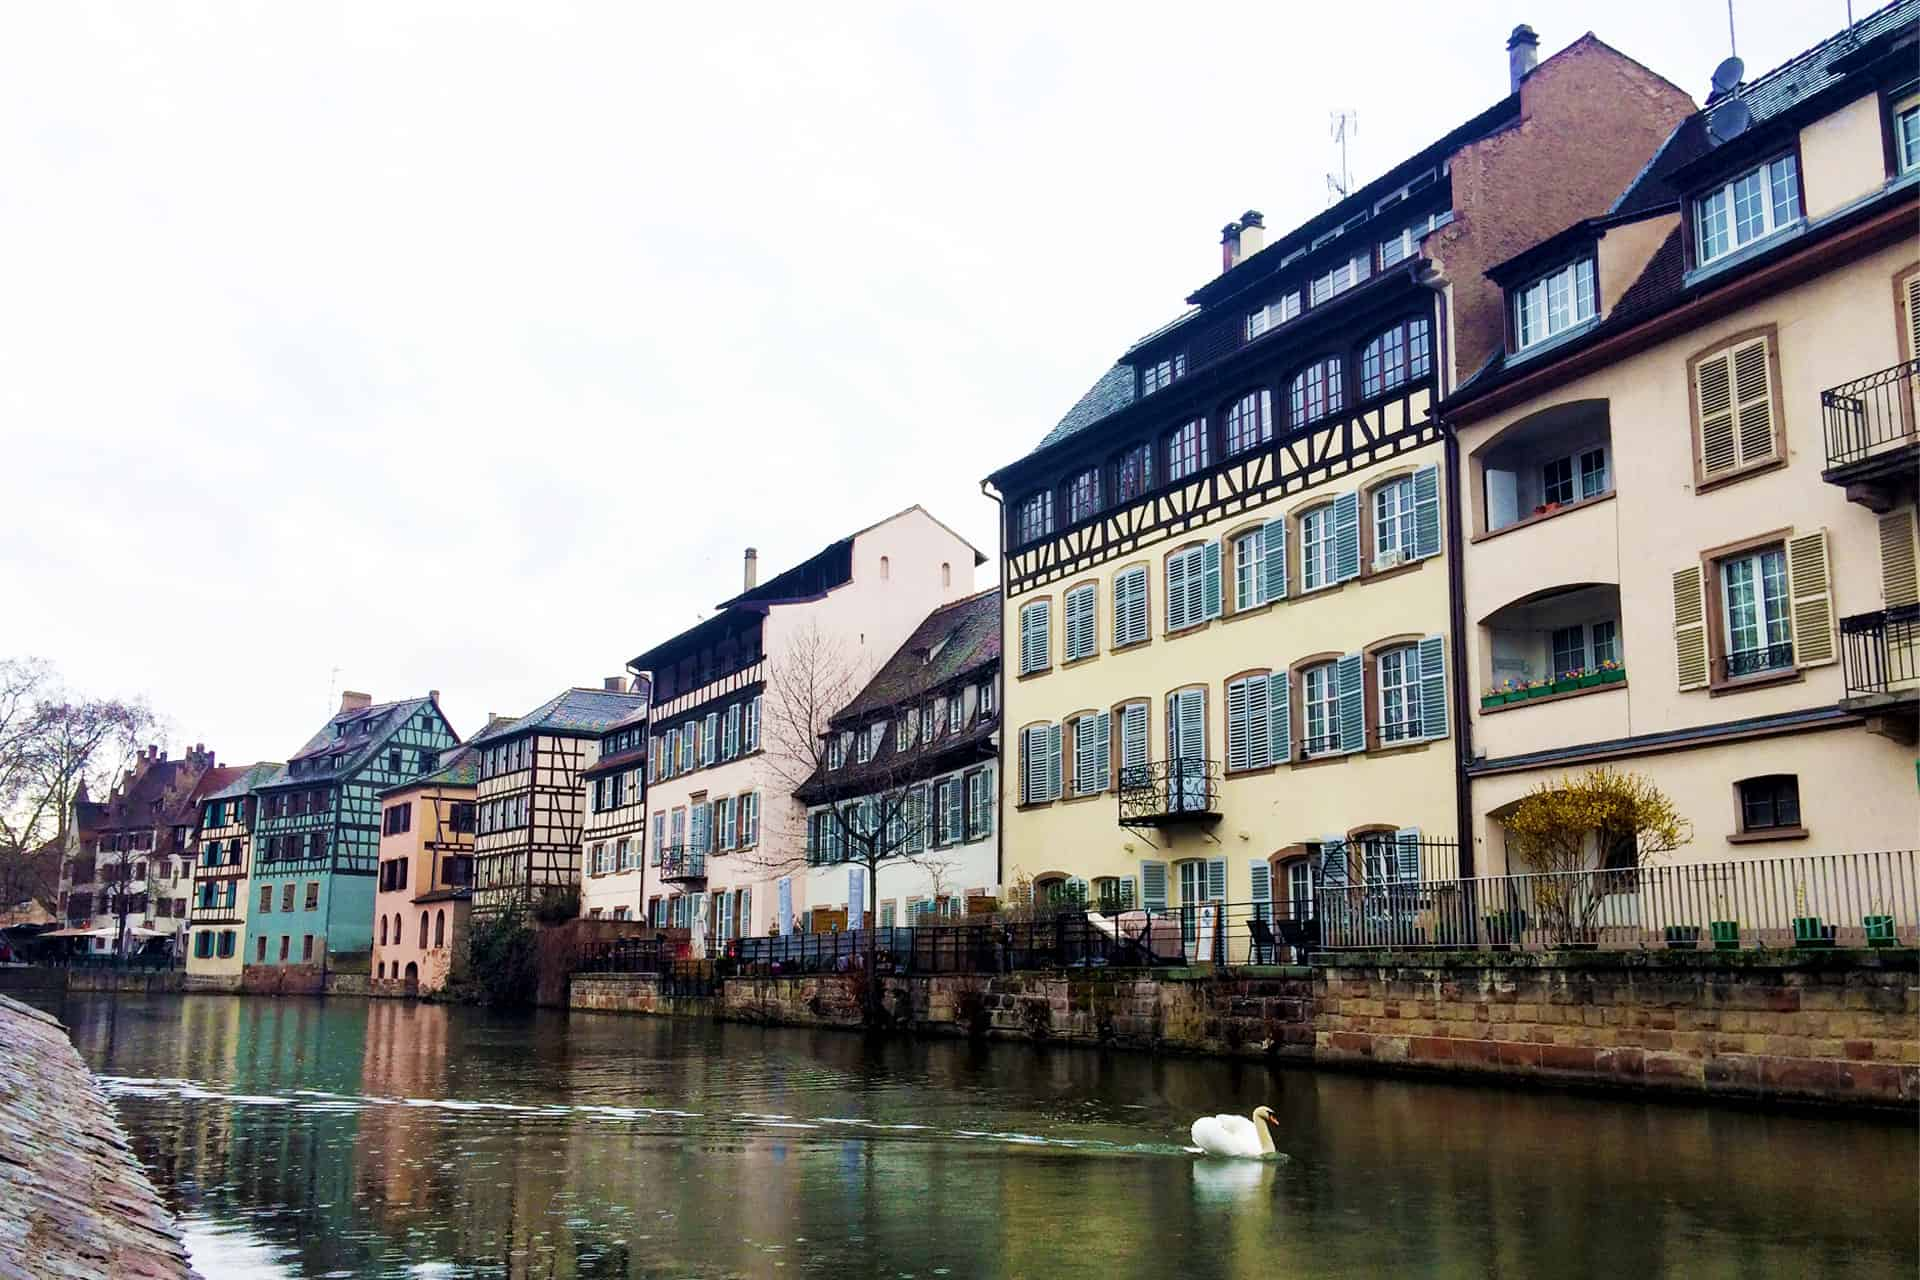 Caught a swan gliding through the Strasbourg River.